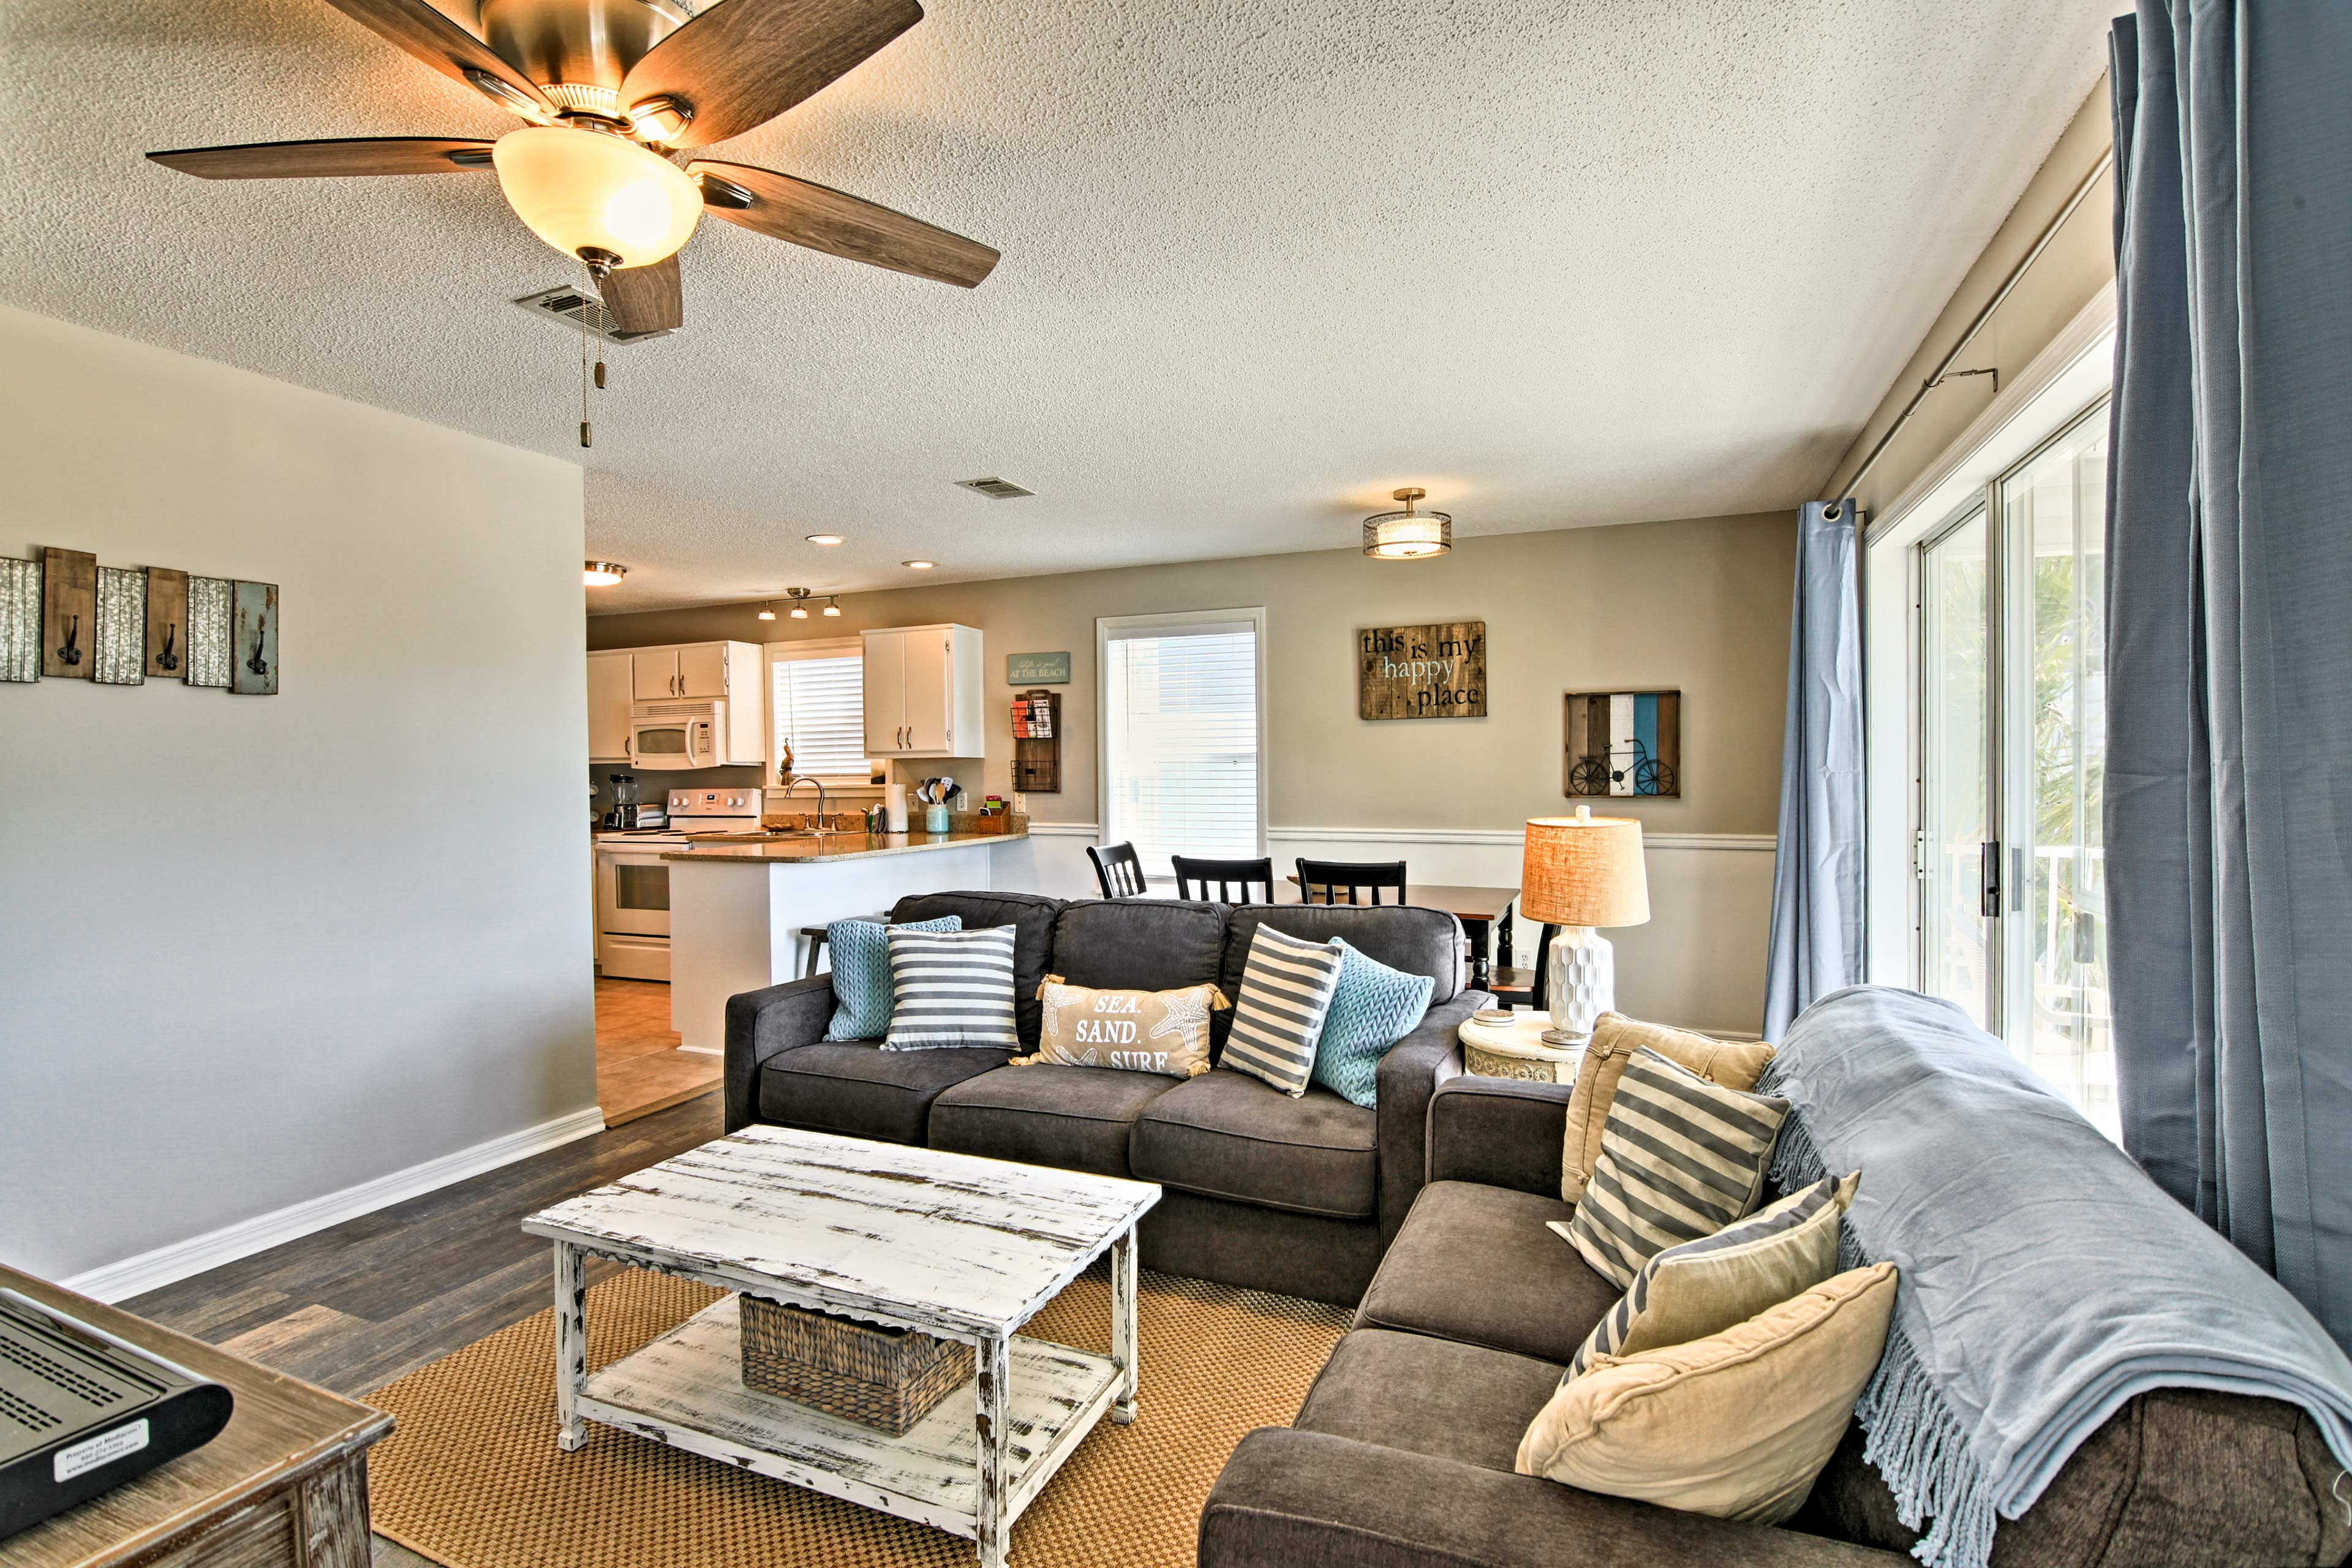 The condo is bright and airy offering a warm and welcoming ambiance.